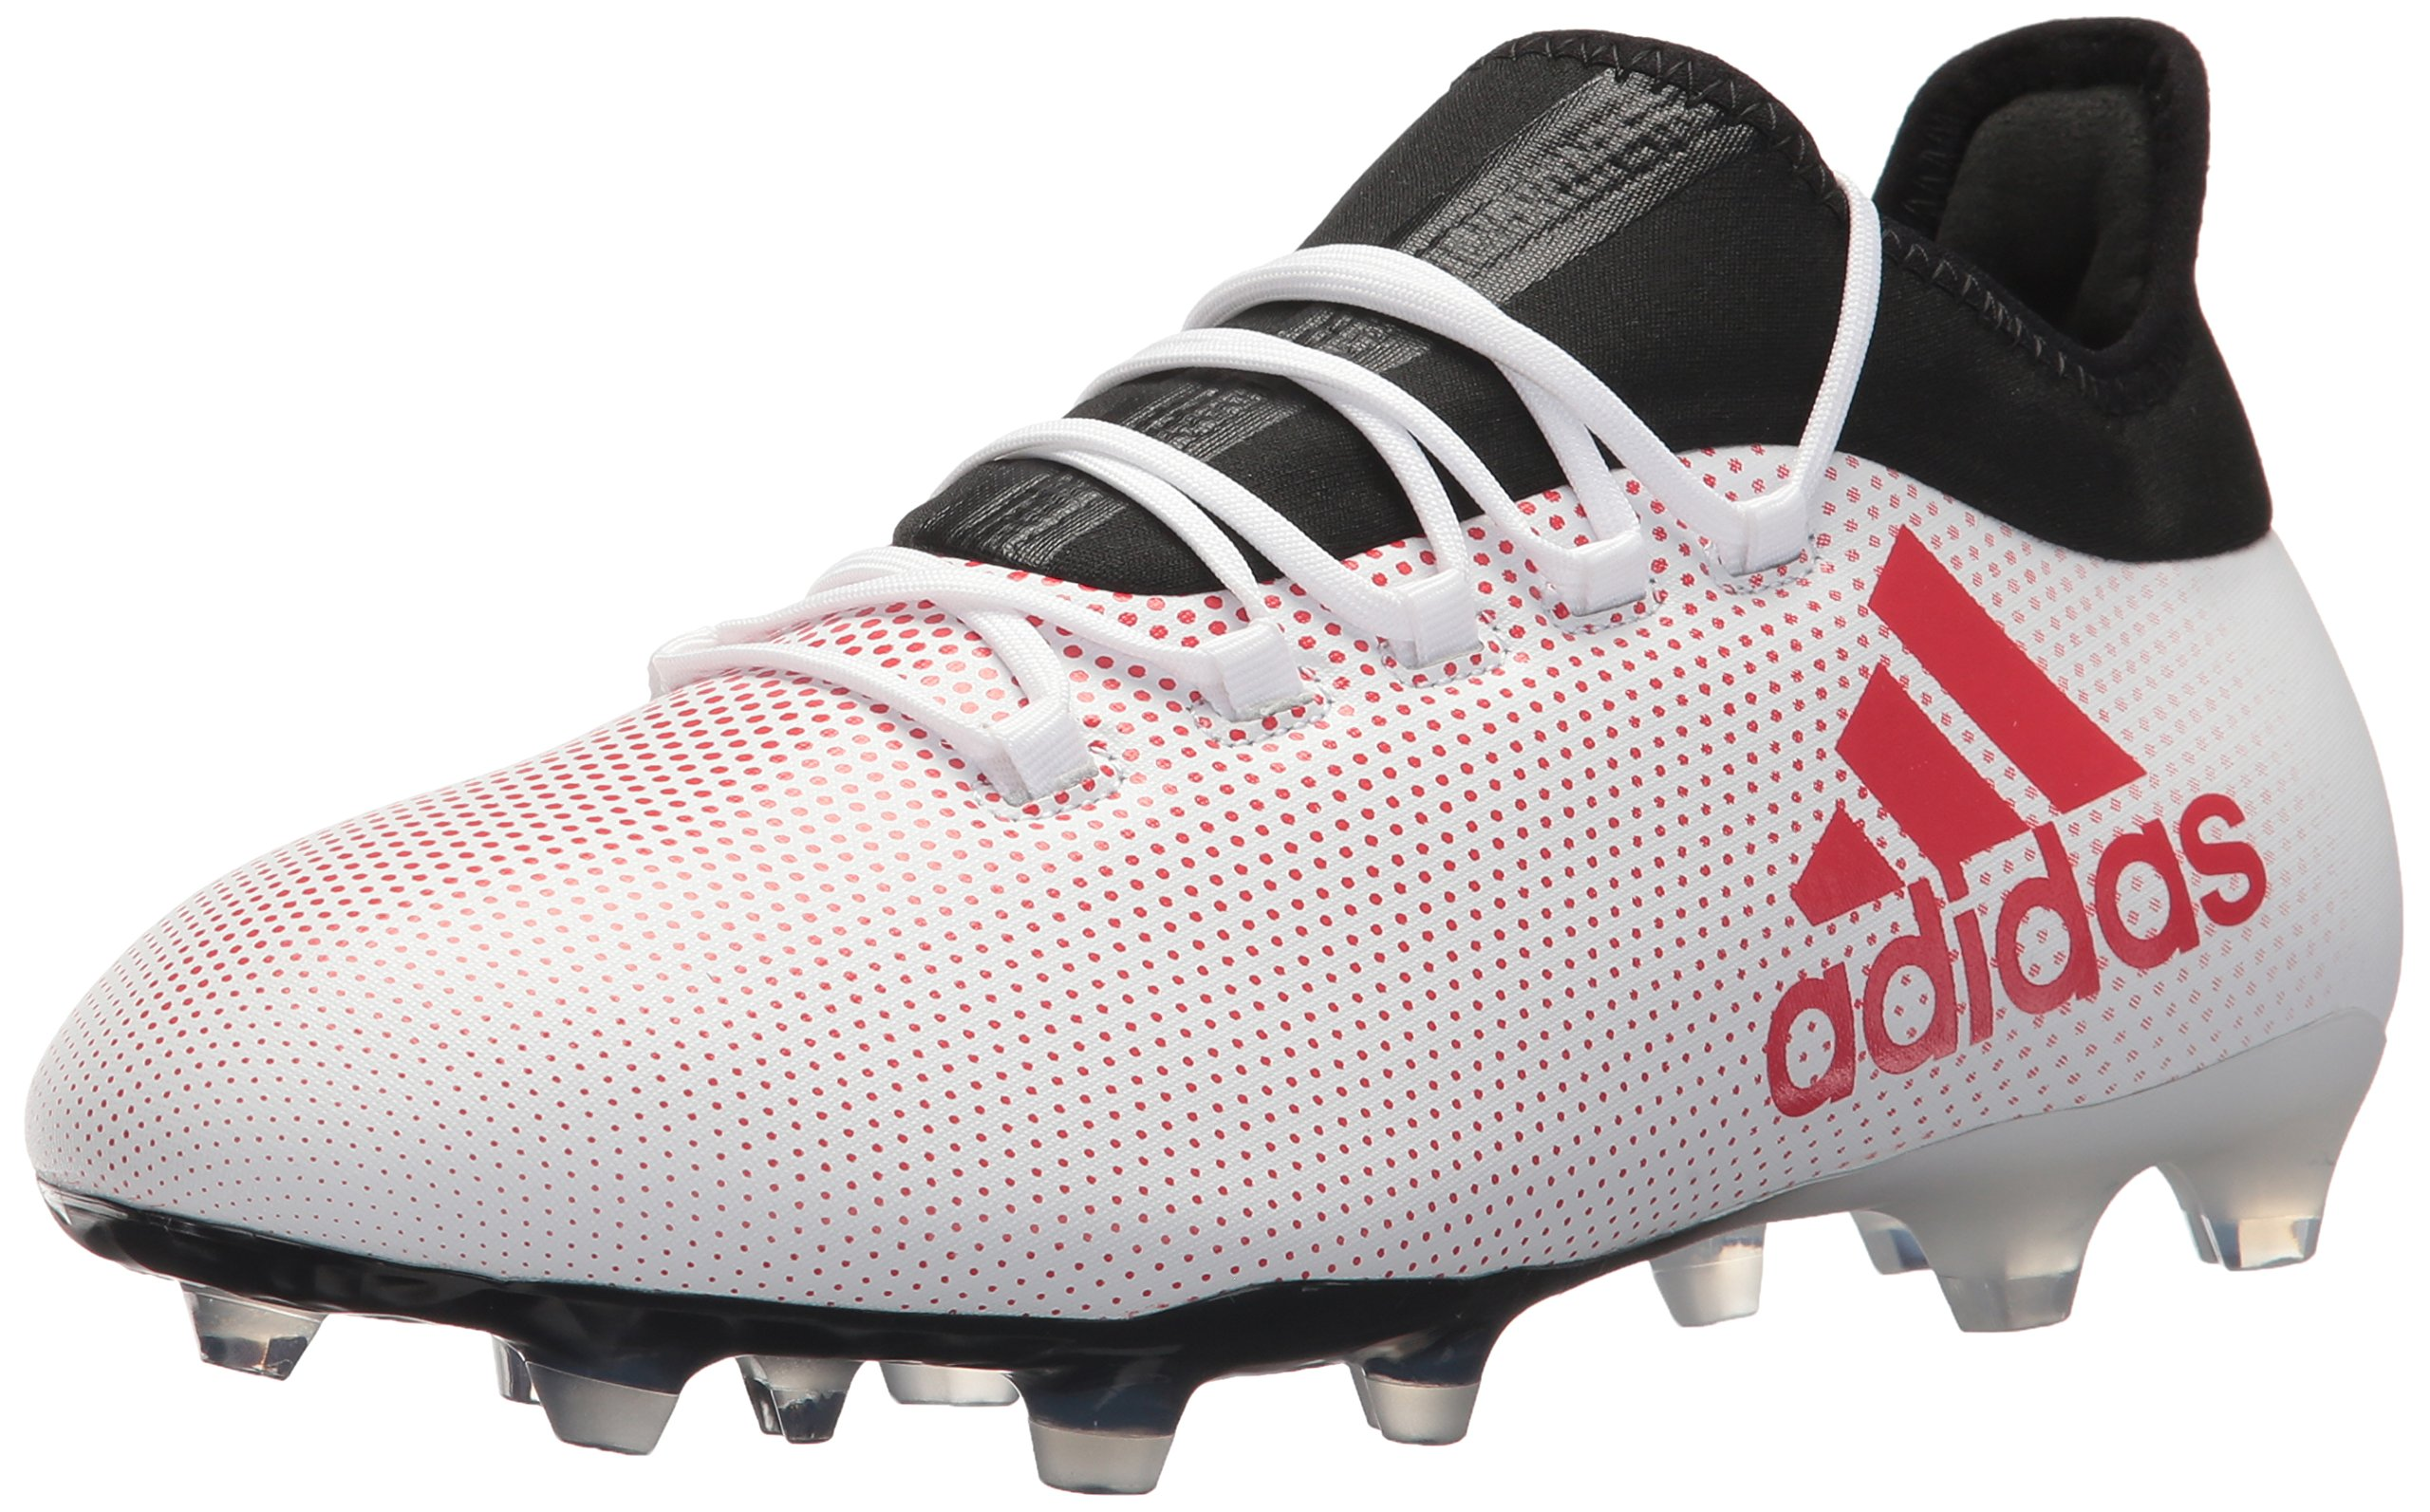 adidas Men's X 17.2 FG Soccer Shoe, Grey/Real Coral/Core Black, 8.5 M US by adidas